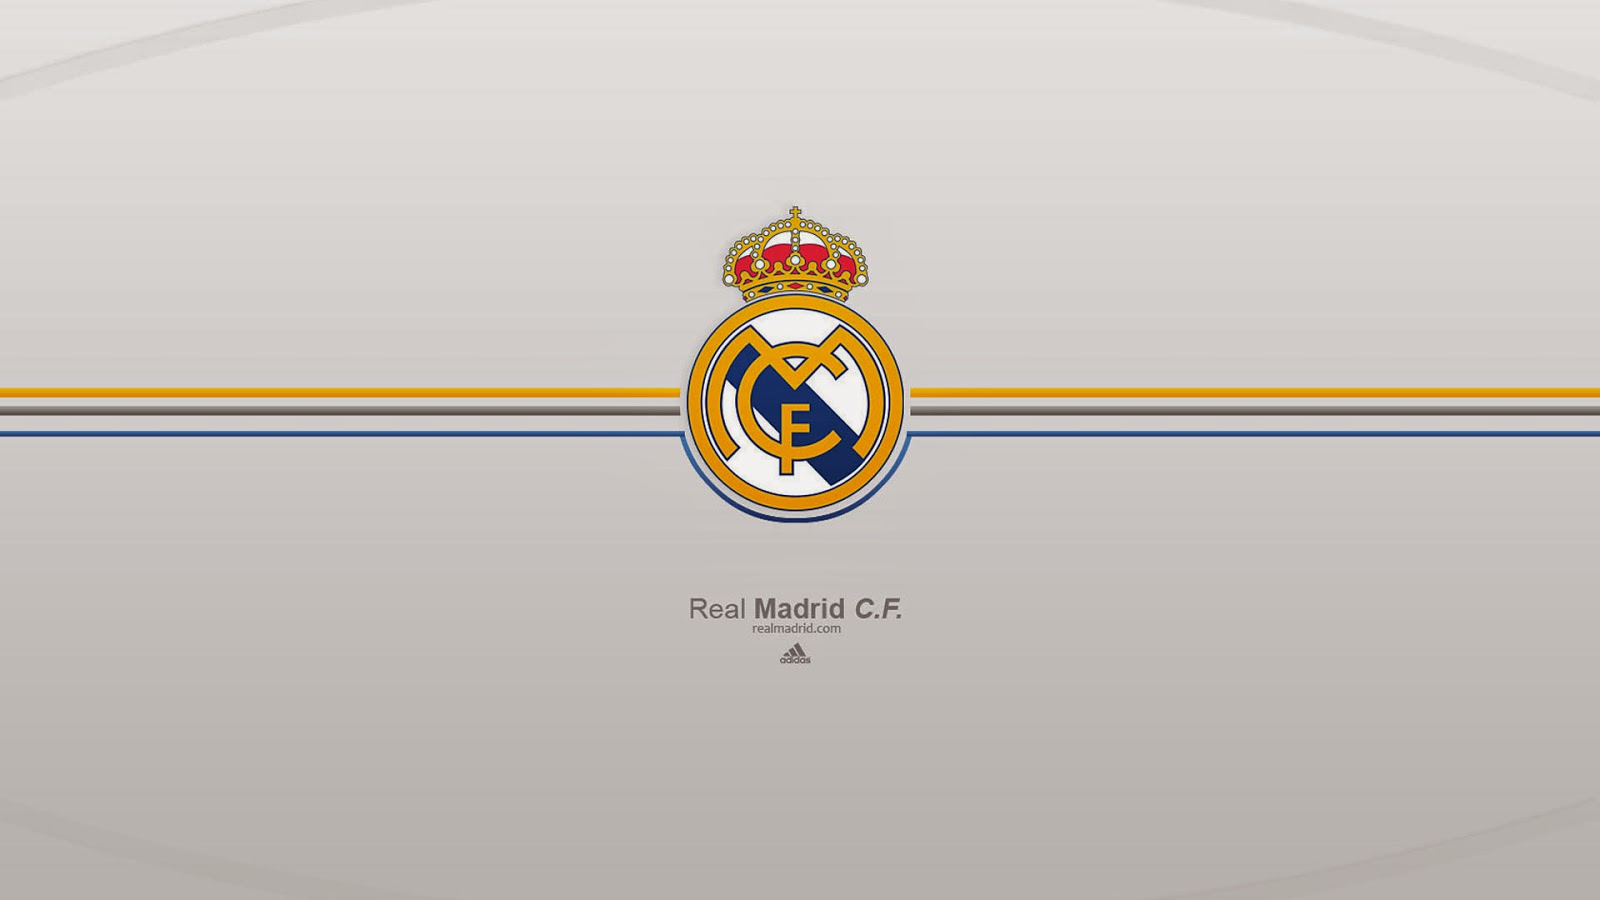 Fc Real Madrid New Hd Wallpapers Hd Football Wallpapers